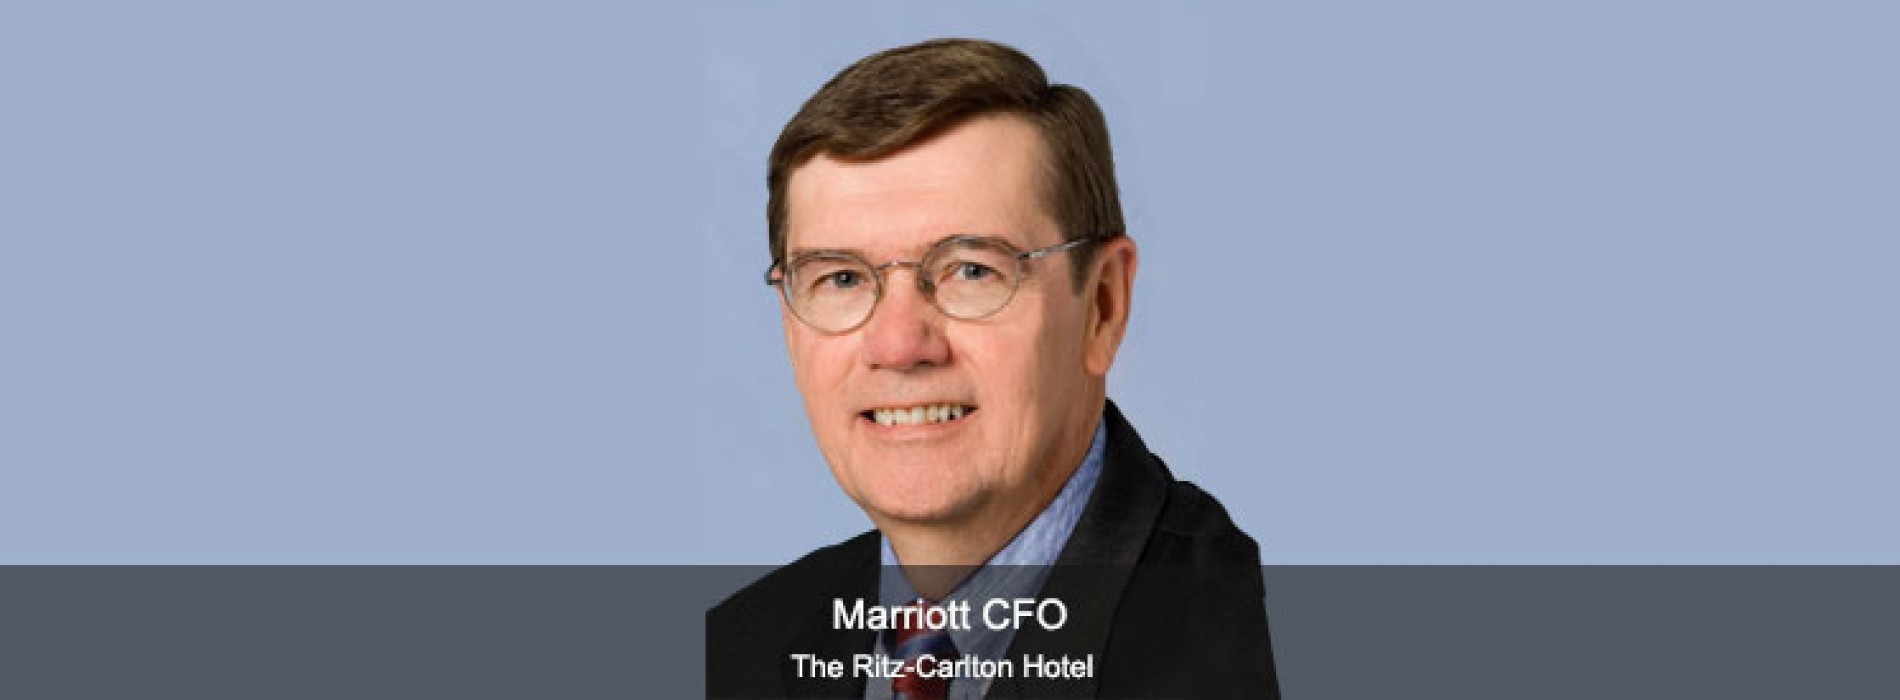 Marriott CFO to Retire on December 31, 2015